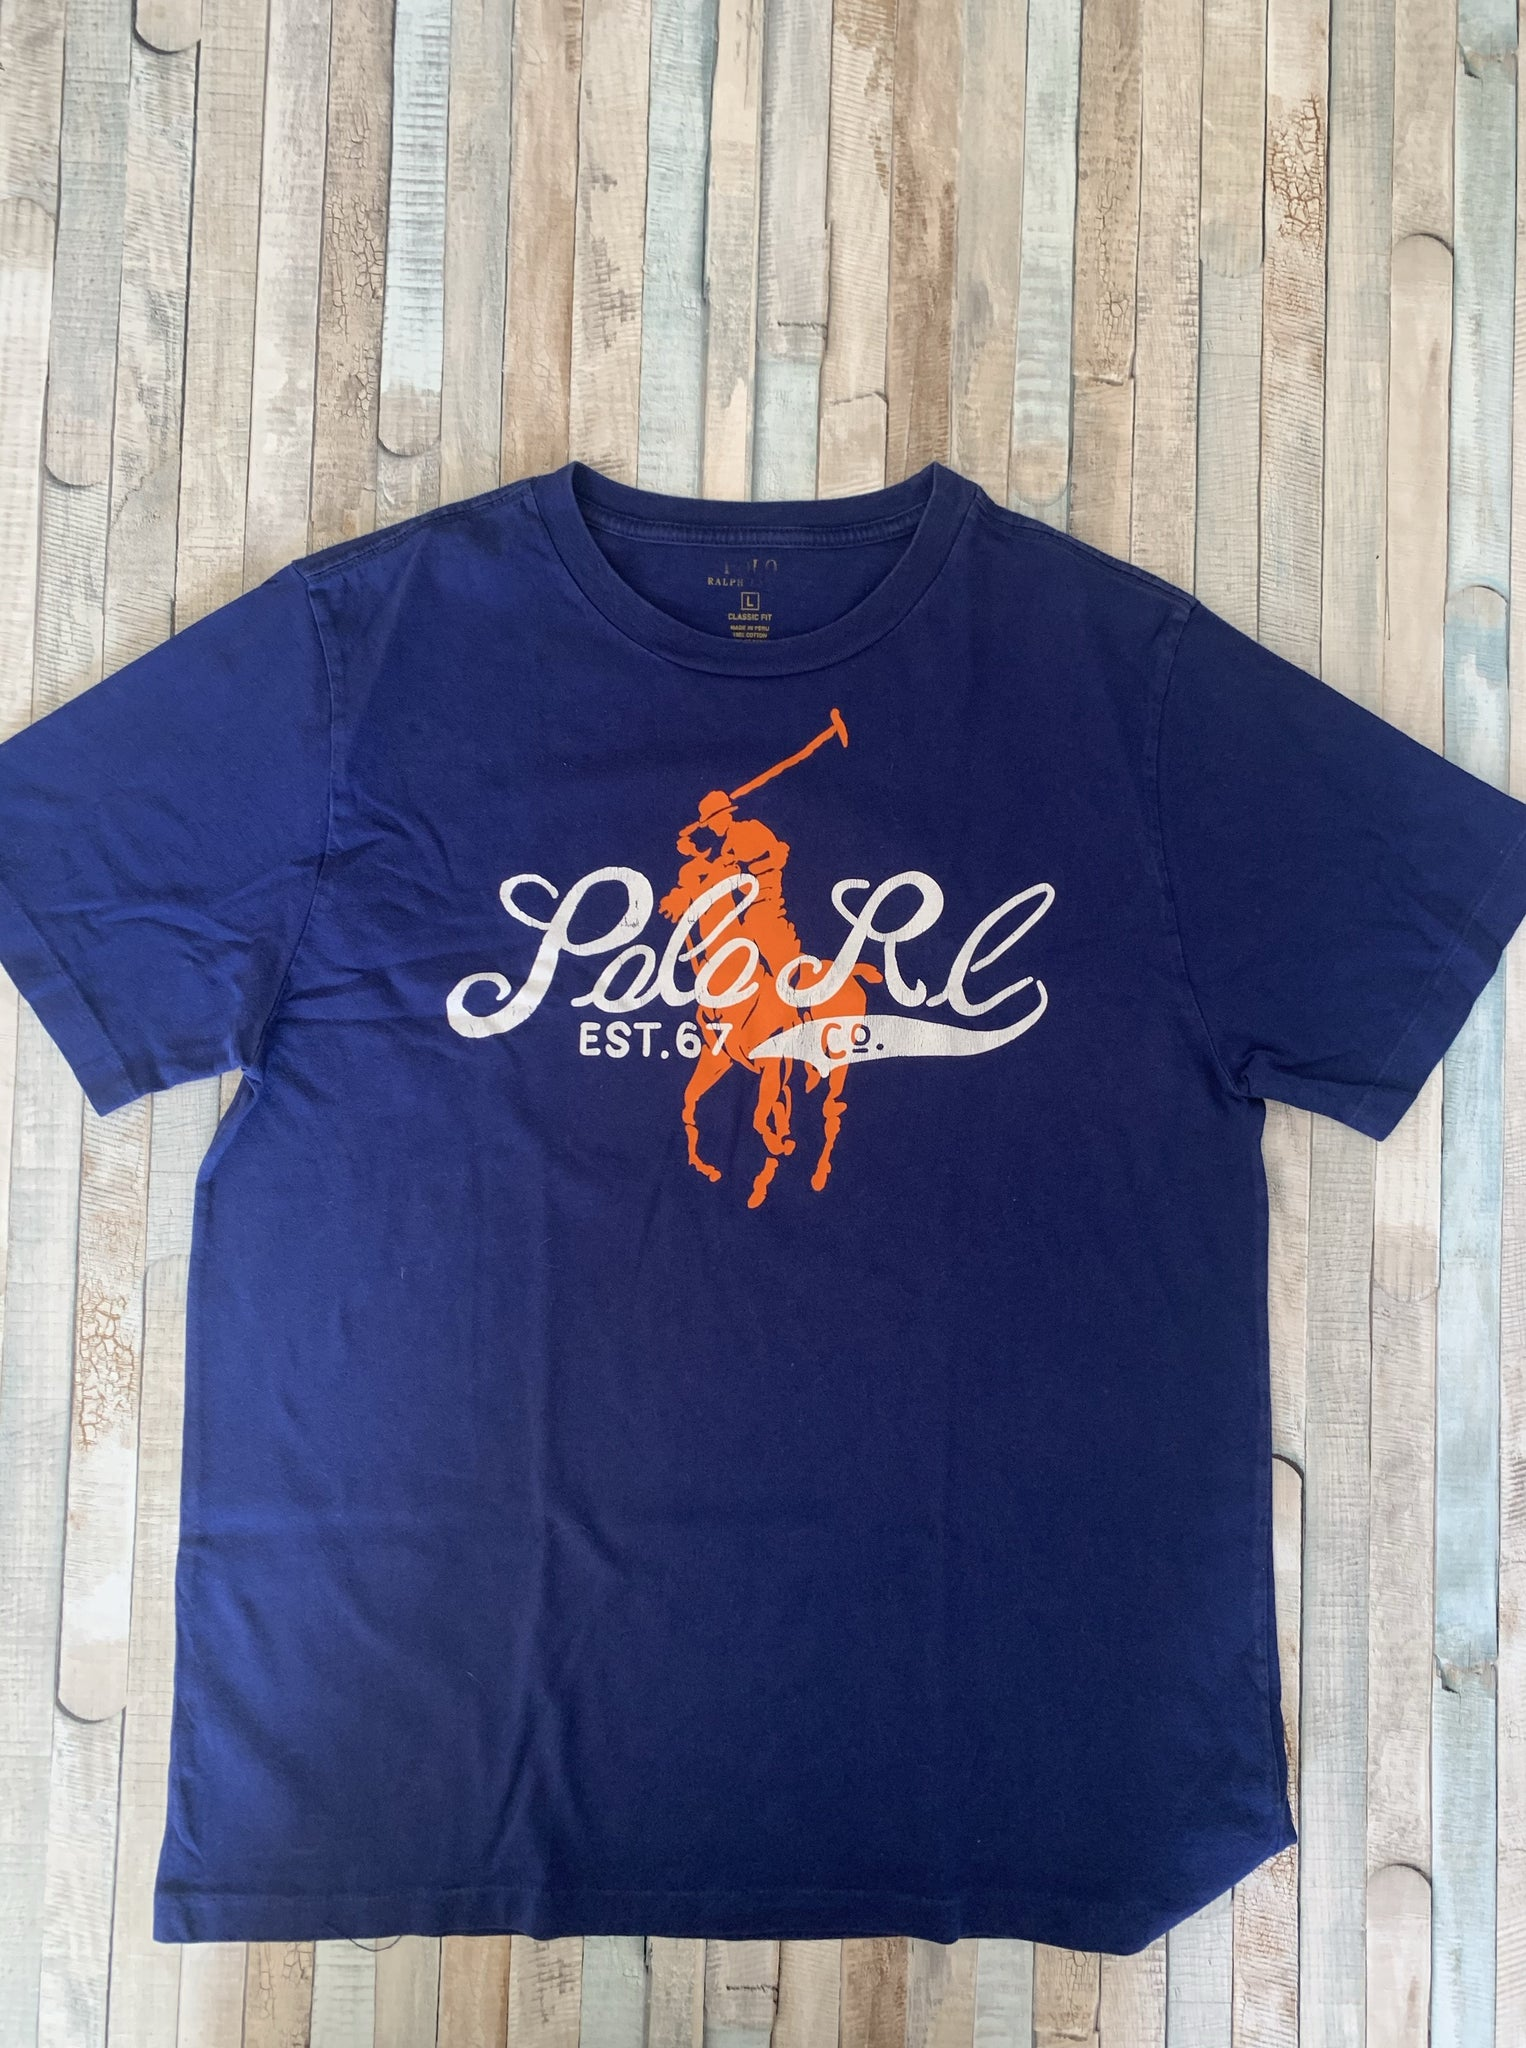 Polo Ralph Lauren Blue With Orange Big Pony T Shirt L (14-16) - Nippers Preloved children's clothing